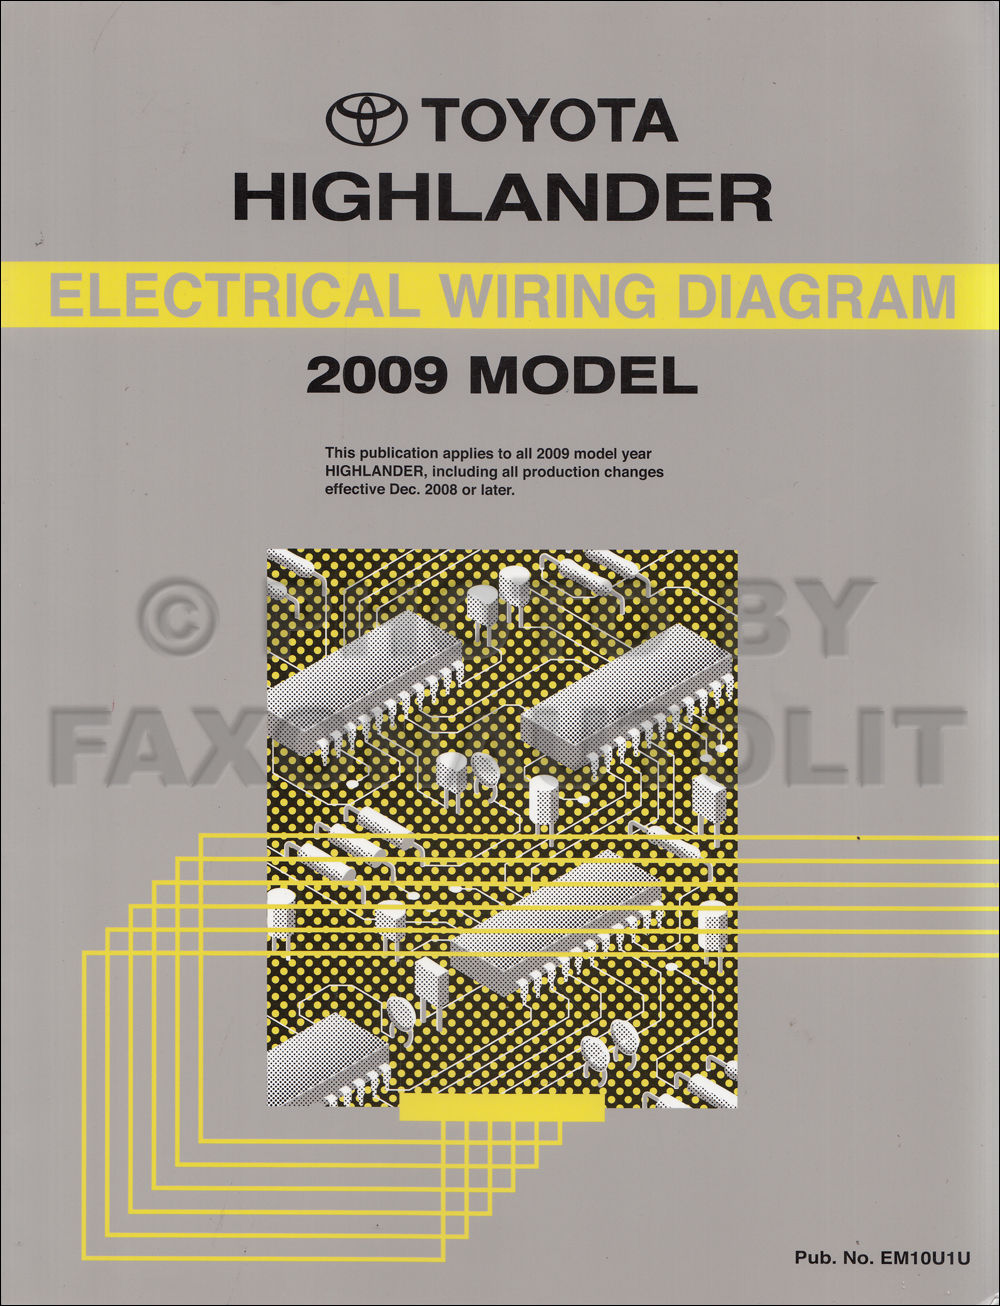 2009 Toyota Highlander GAS Wiring Diagram Manual Original